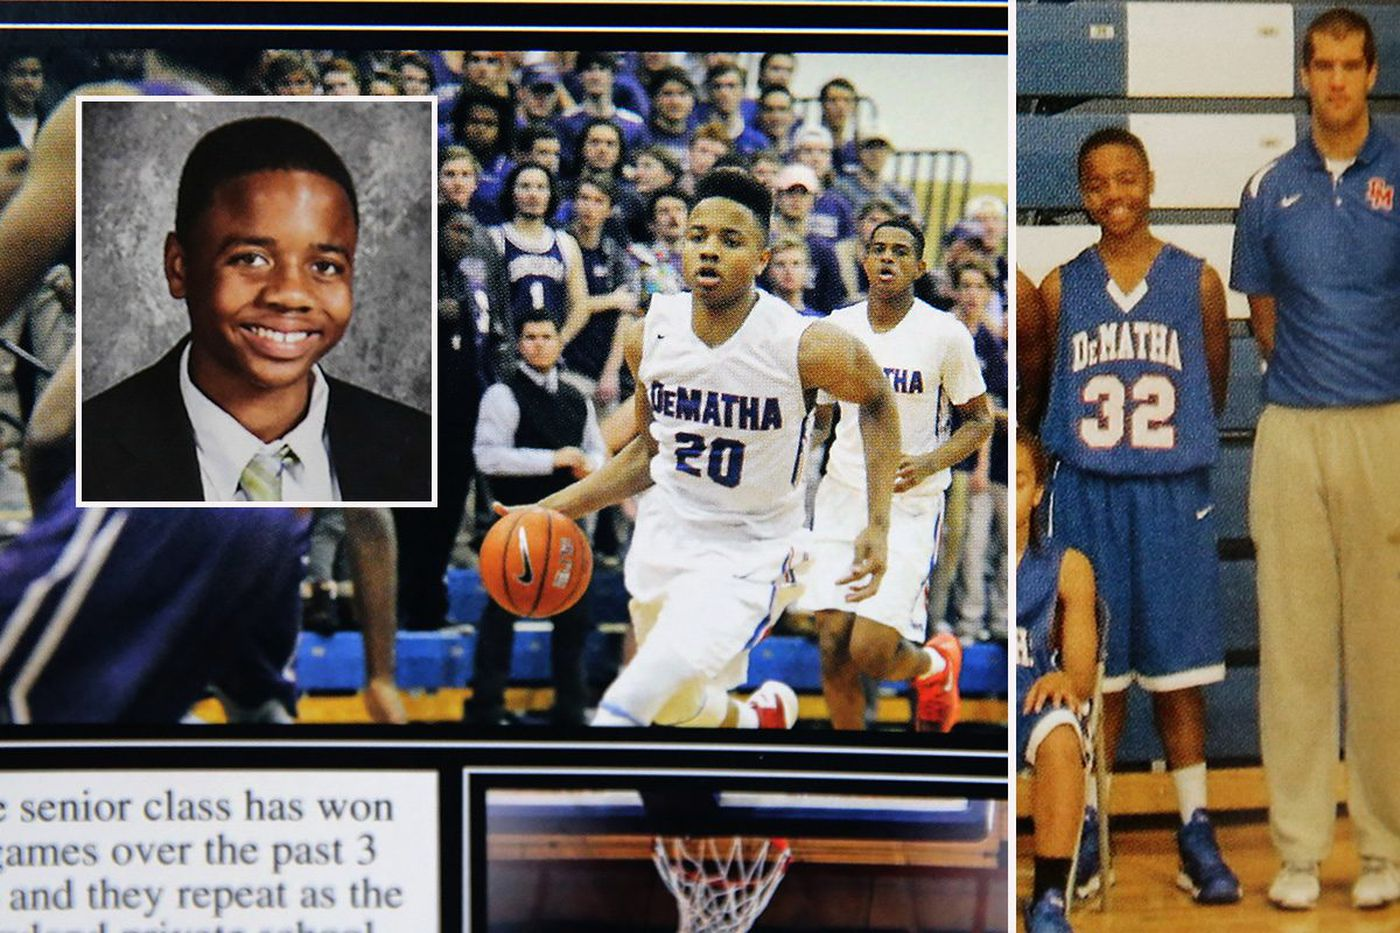 Markelle Fultz proved his mettle at famed DeMatha High School